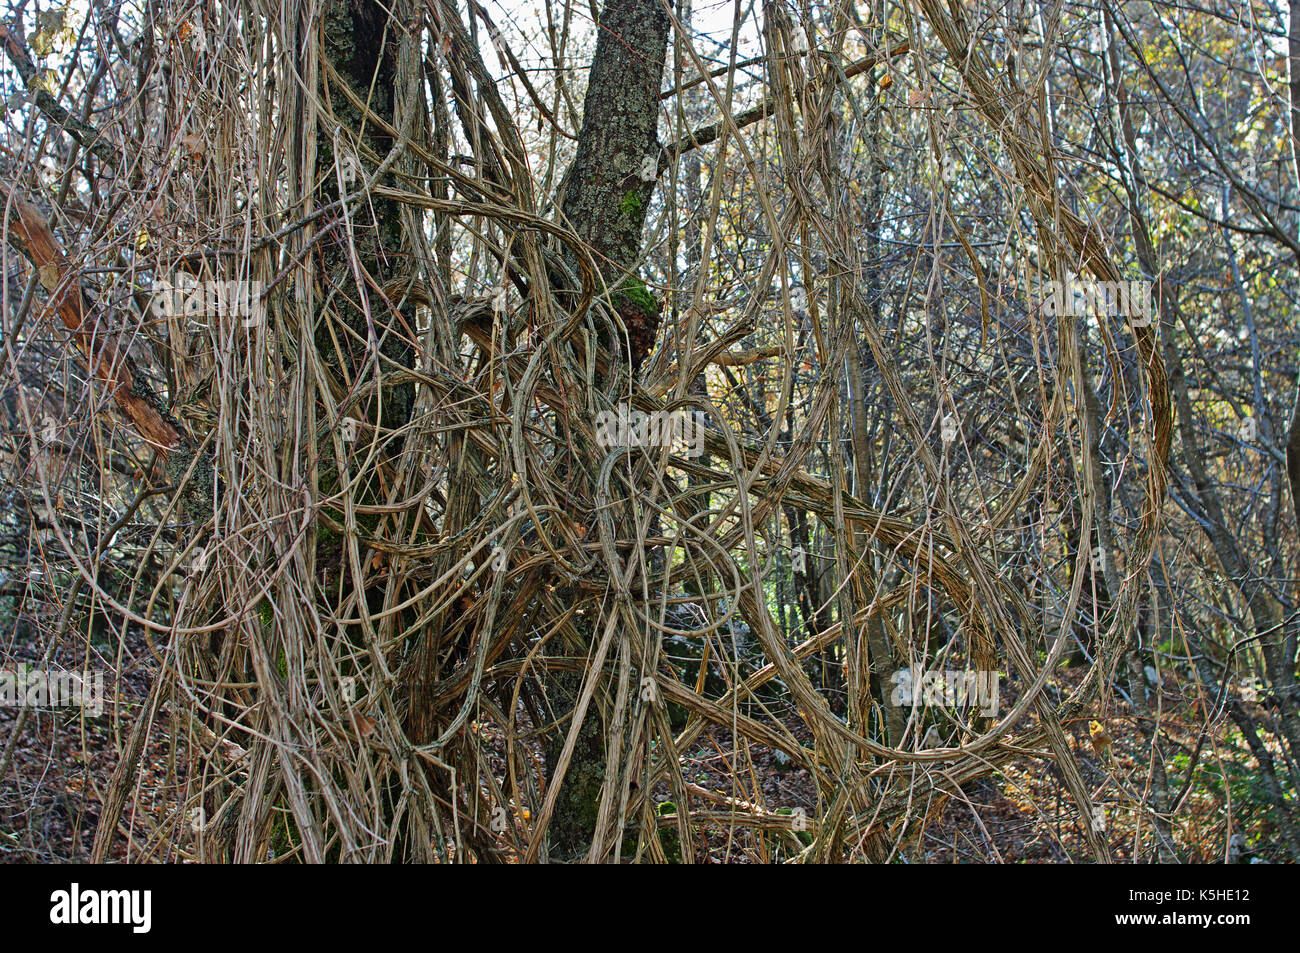 the woody stems from Clematis vitalba, the 'Traveller's Joy' or 'Old man's beard', family Ranunculaceae, in the Aurunci mountains, Esperia, Italy - Stock Image